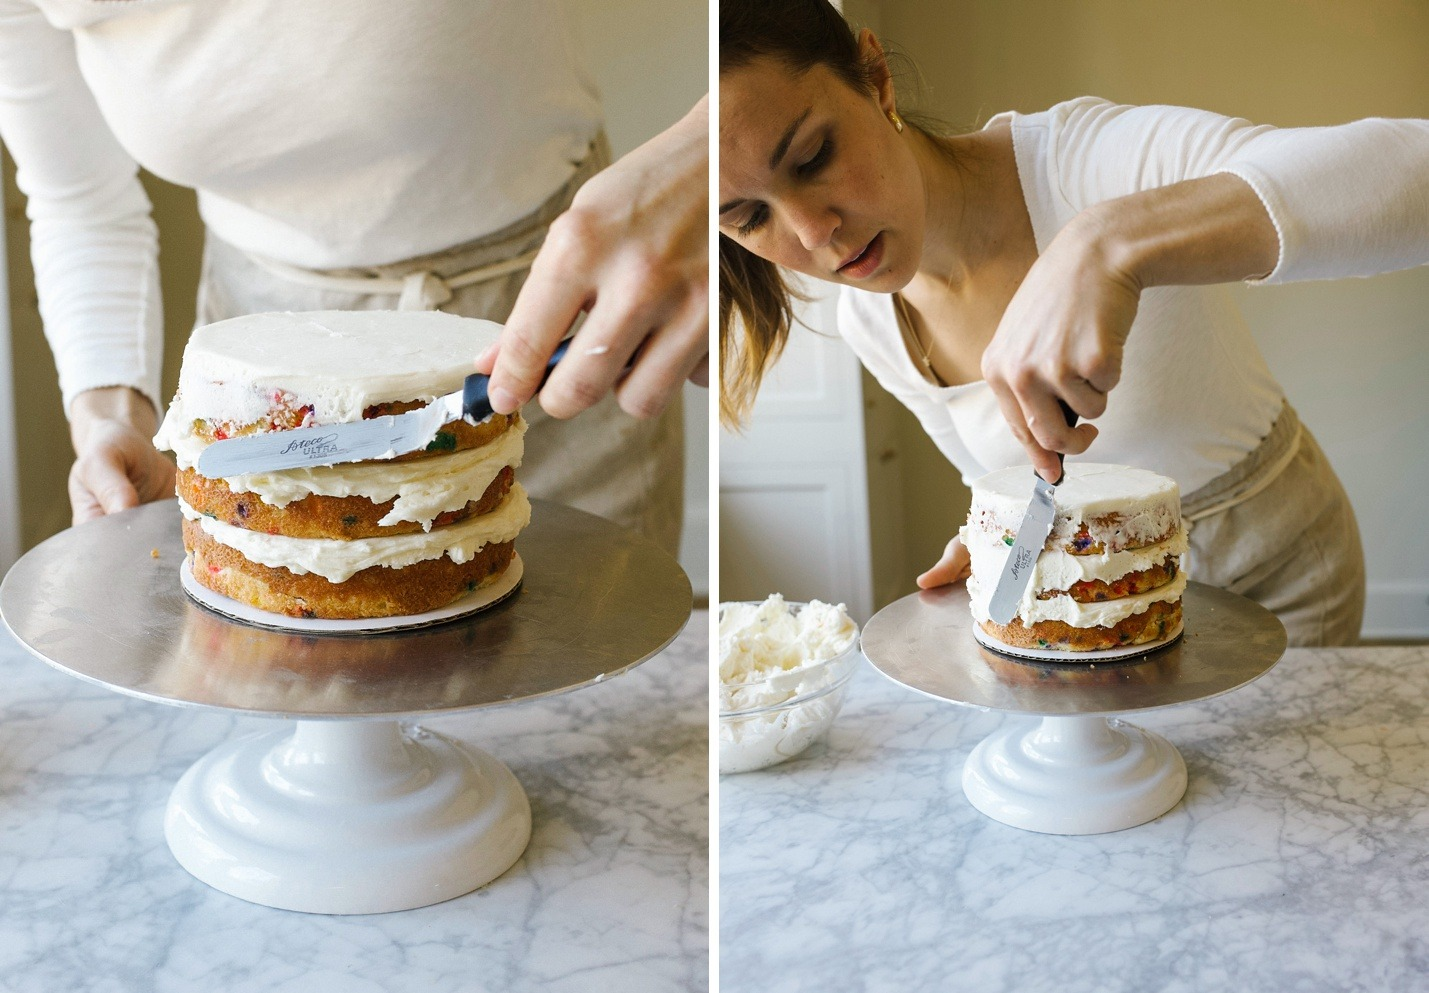 How to Stack a Layer Cake by Wood and Spoon blog. Learn the tips and how to for stacking pretty naked cakes and layer cakes from scratch homemade! Step by step tutorial with photos for learning can decorating for beginners. Learn about leveling cakes, crumb coats, filling a cake, piping borders, and more. On thewoodandspoon.com